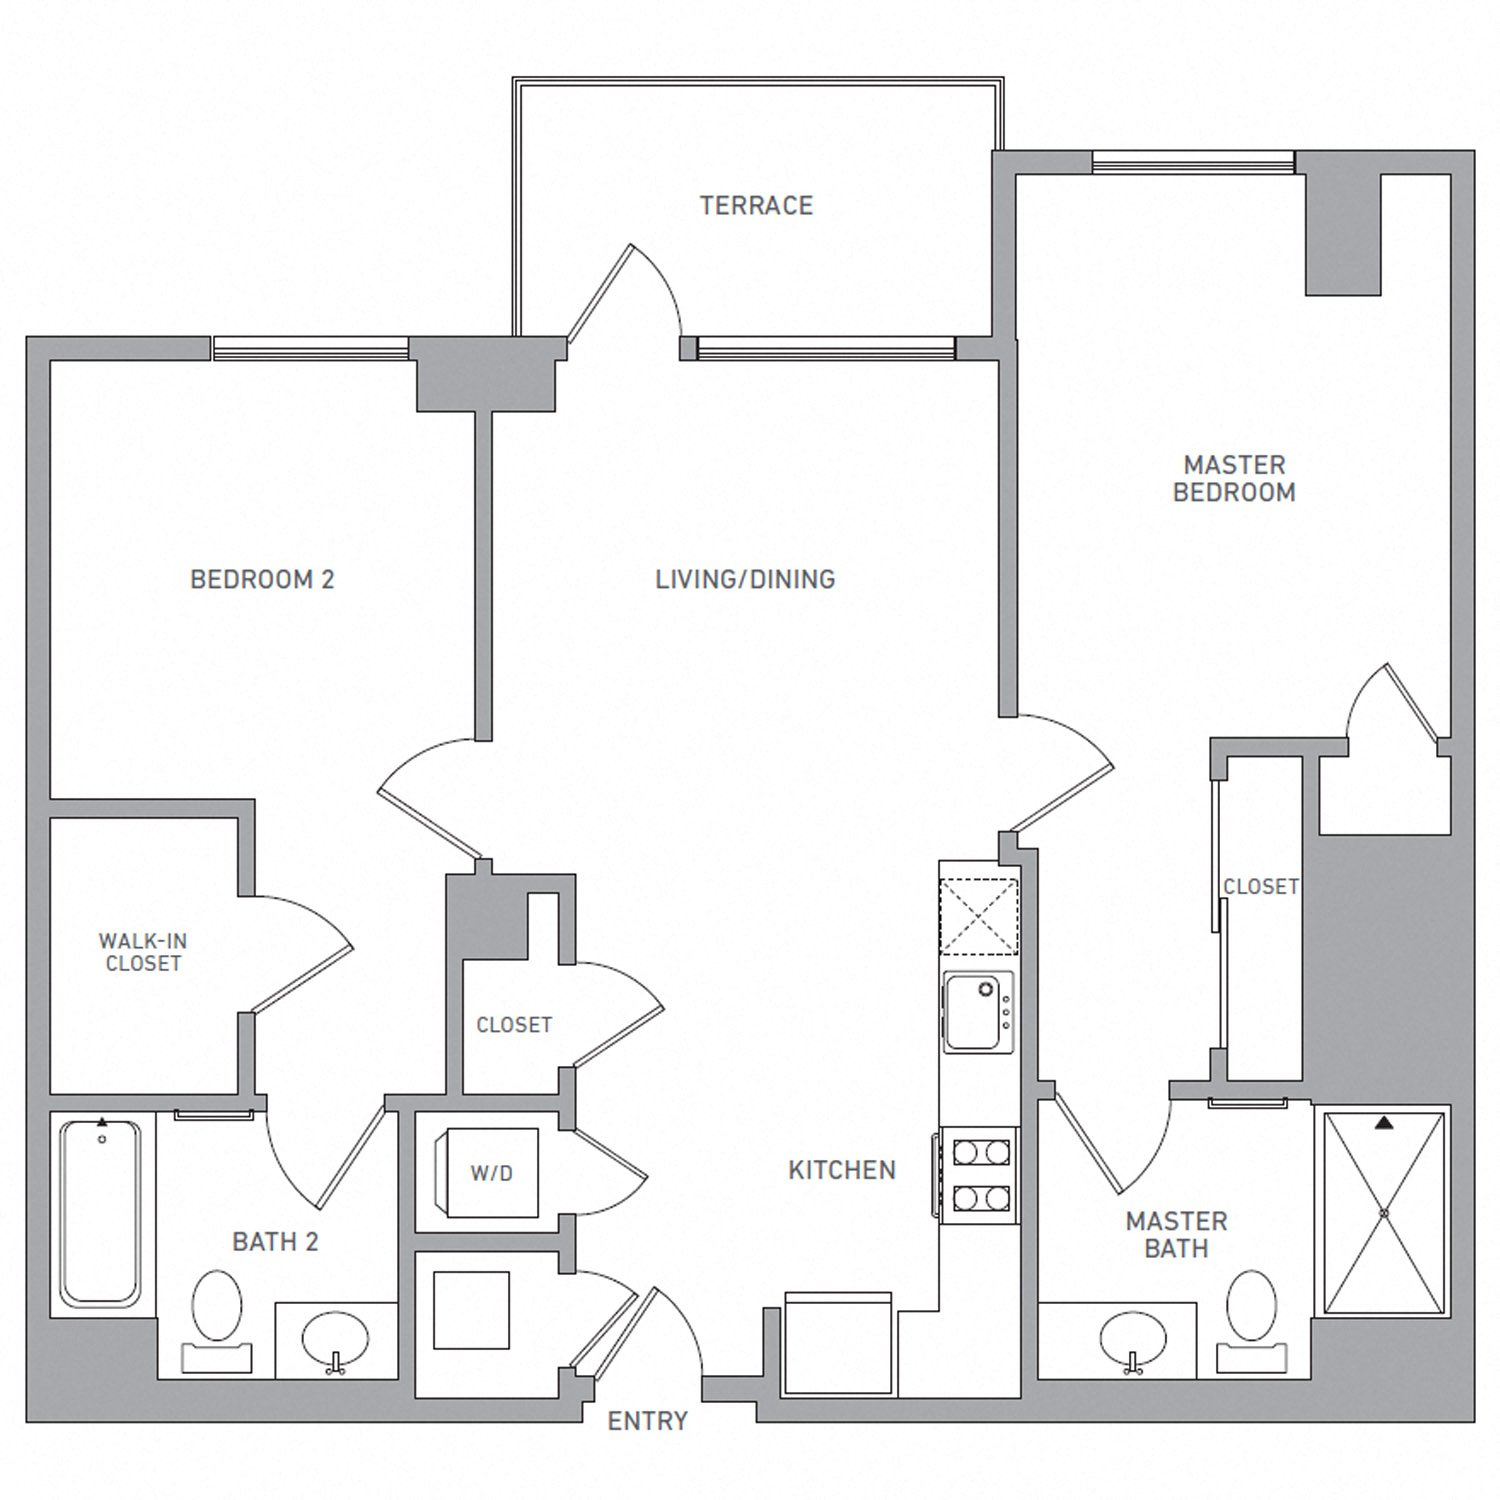 B Two A floor plan diagram. Two bedrooms, two bathrooms, an open kitchen and living area, a terrace, and a washer dryer.